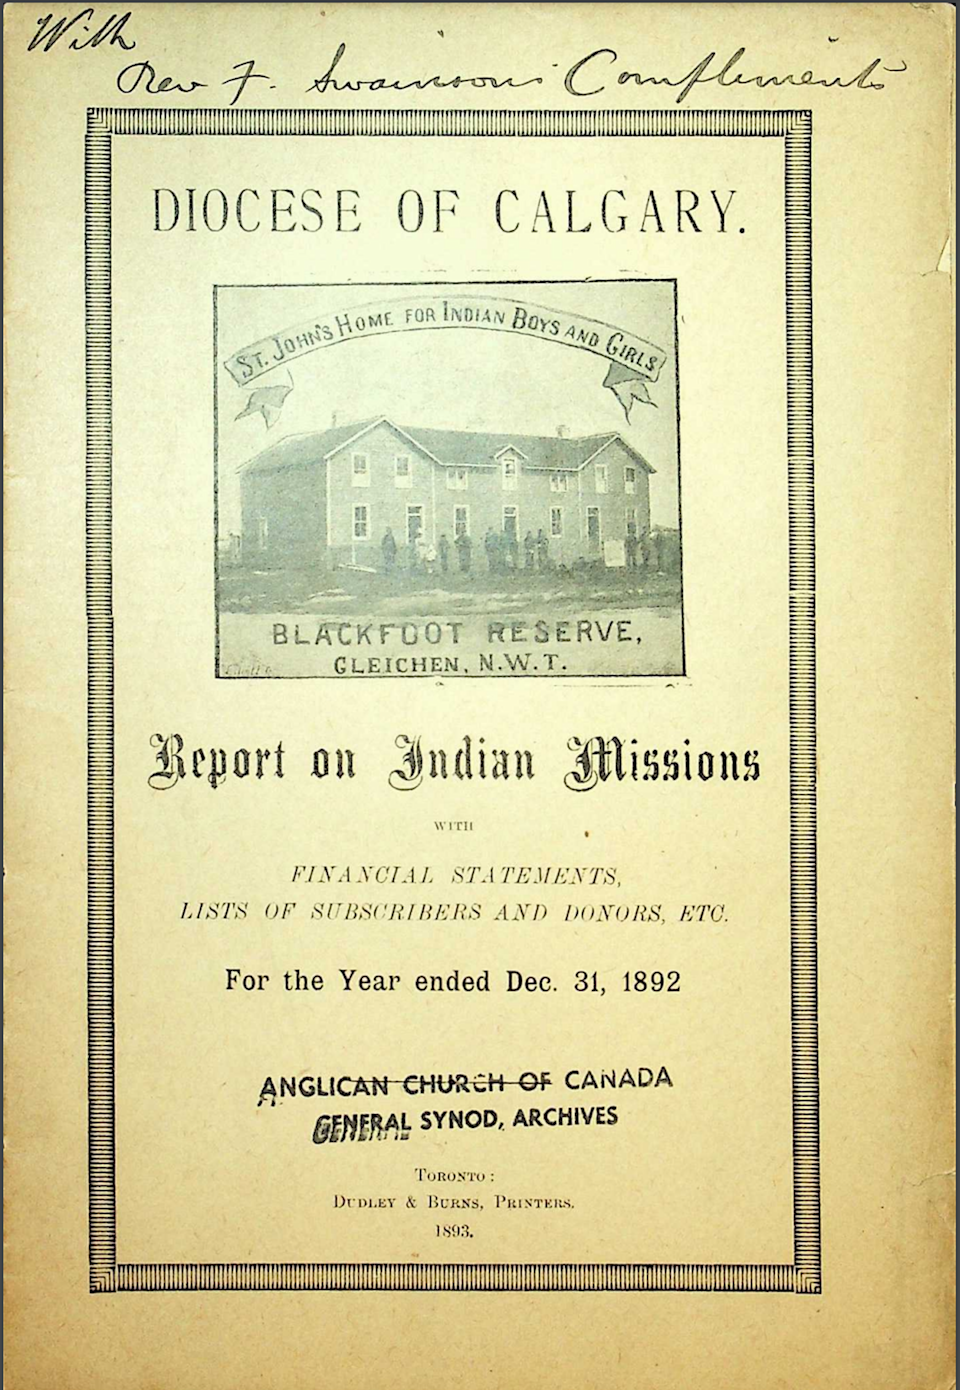 Cover of 1892 report showing a picture of a building with people in front of it that says 'St. John's Home for Indian Boys and Girls, Blackfoot Reserve'